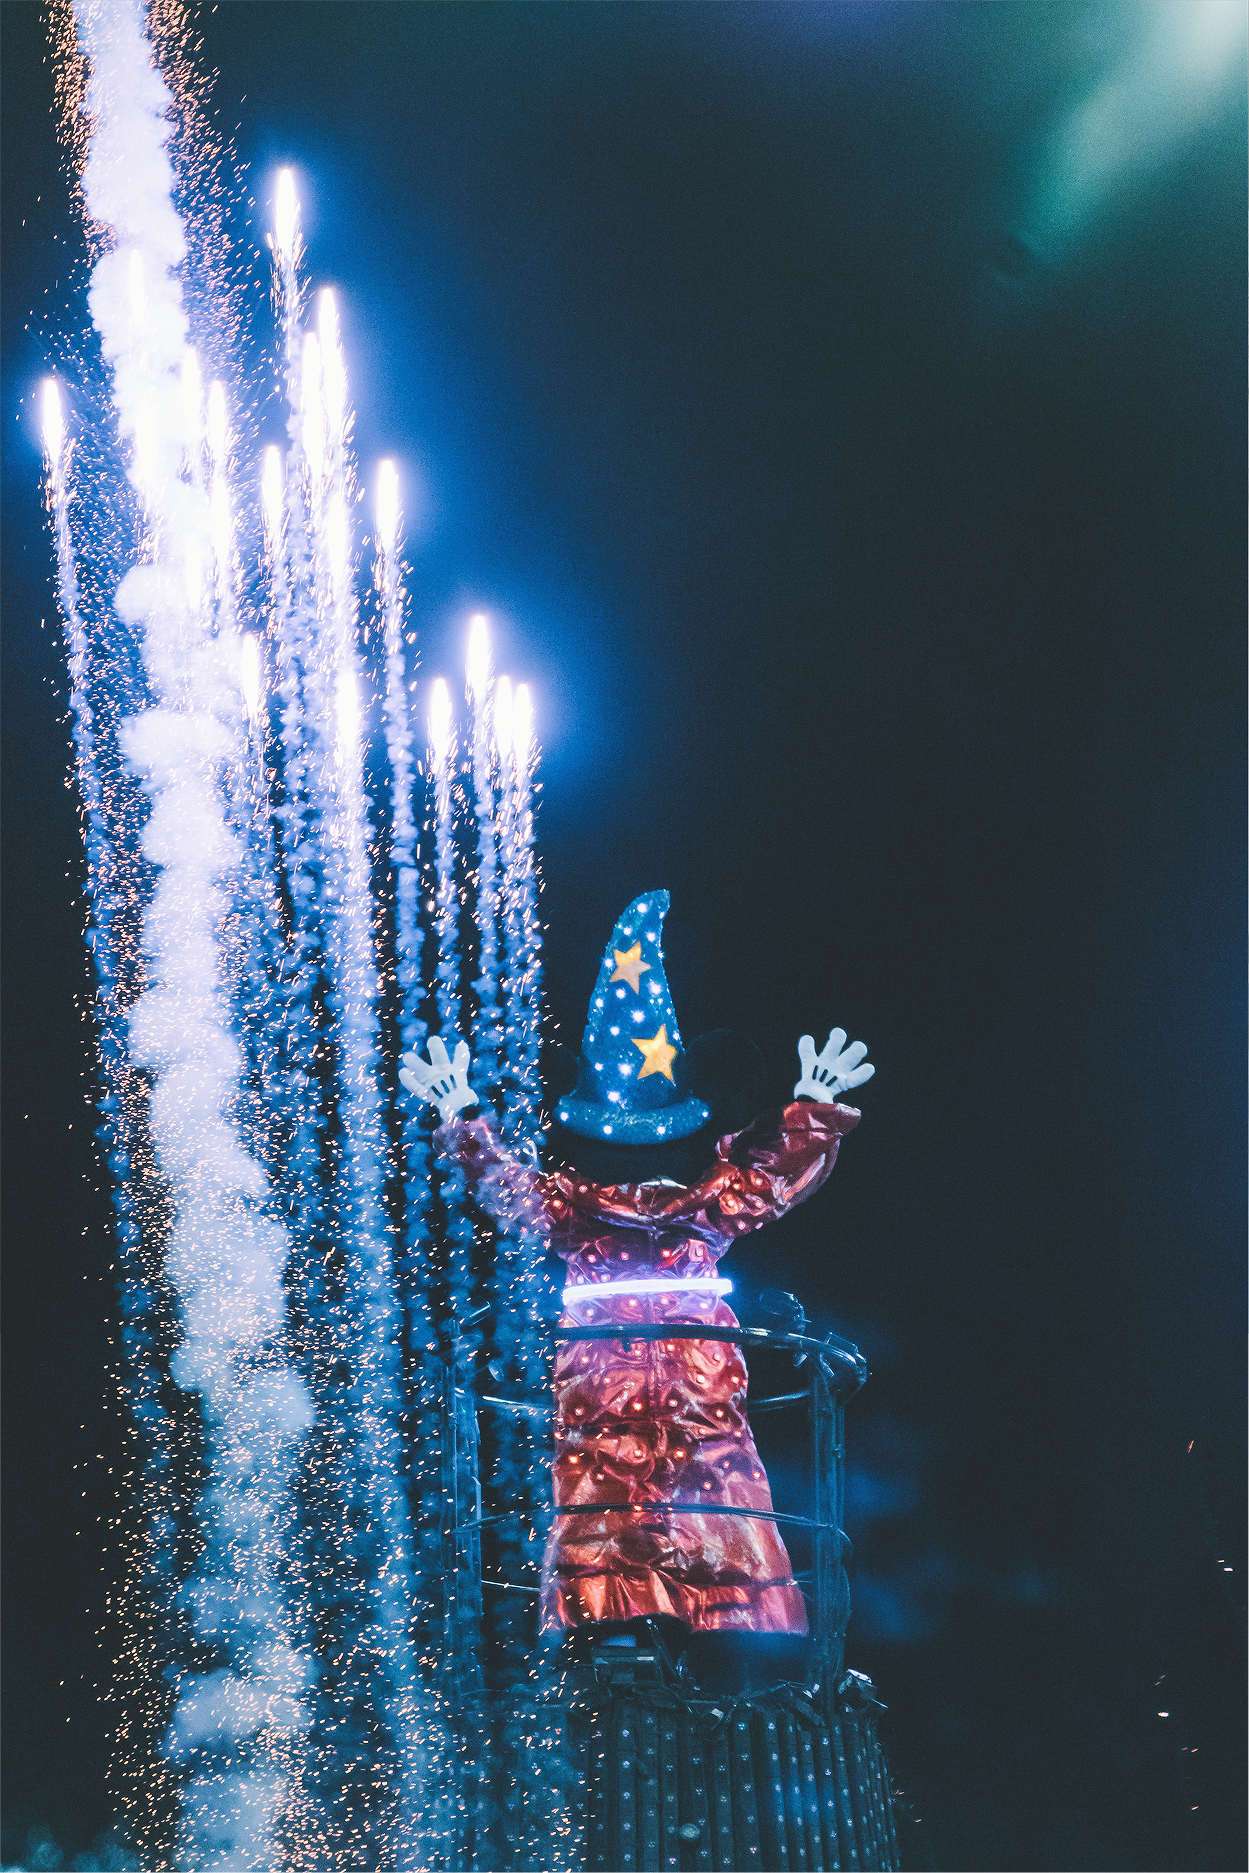 Since we are creatures of habit, we ended our evening at Fantasmic with a couple of our friends. I never tire of seeing Mickey ignite the sky.